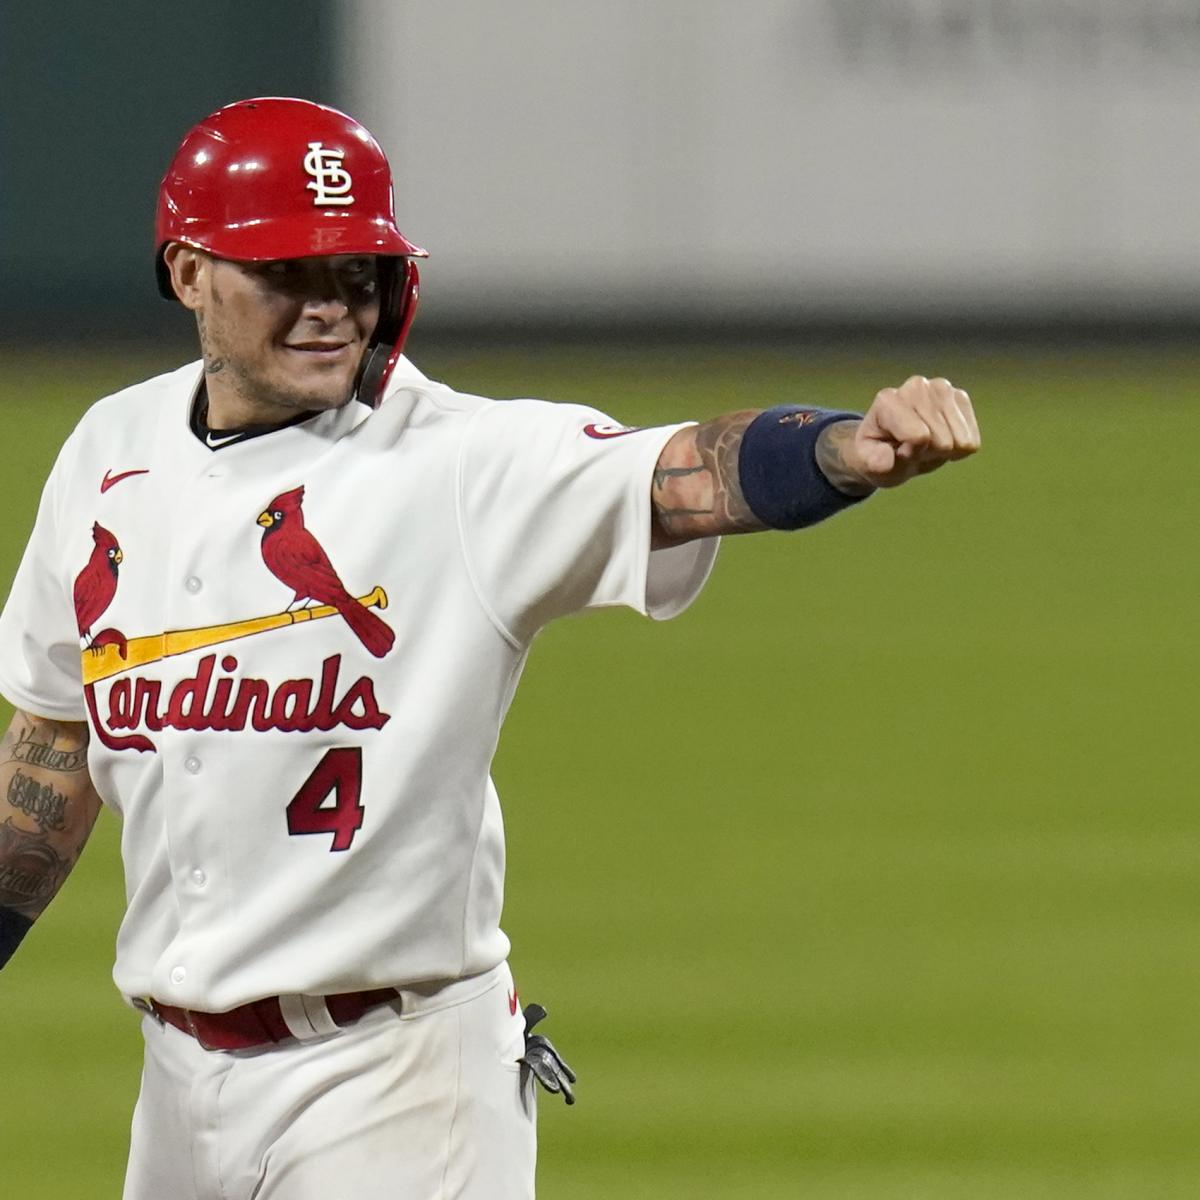 MLB Free Agents 2020: Latest Rumors, Predictions for Yadier Molina, Top Targets